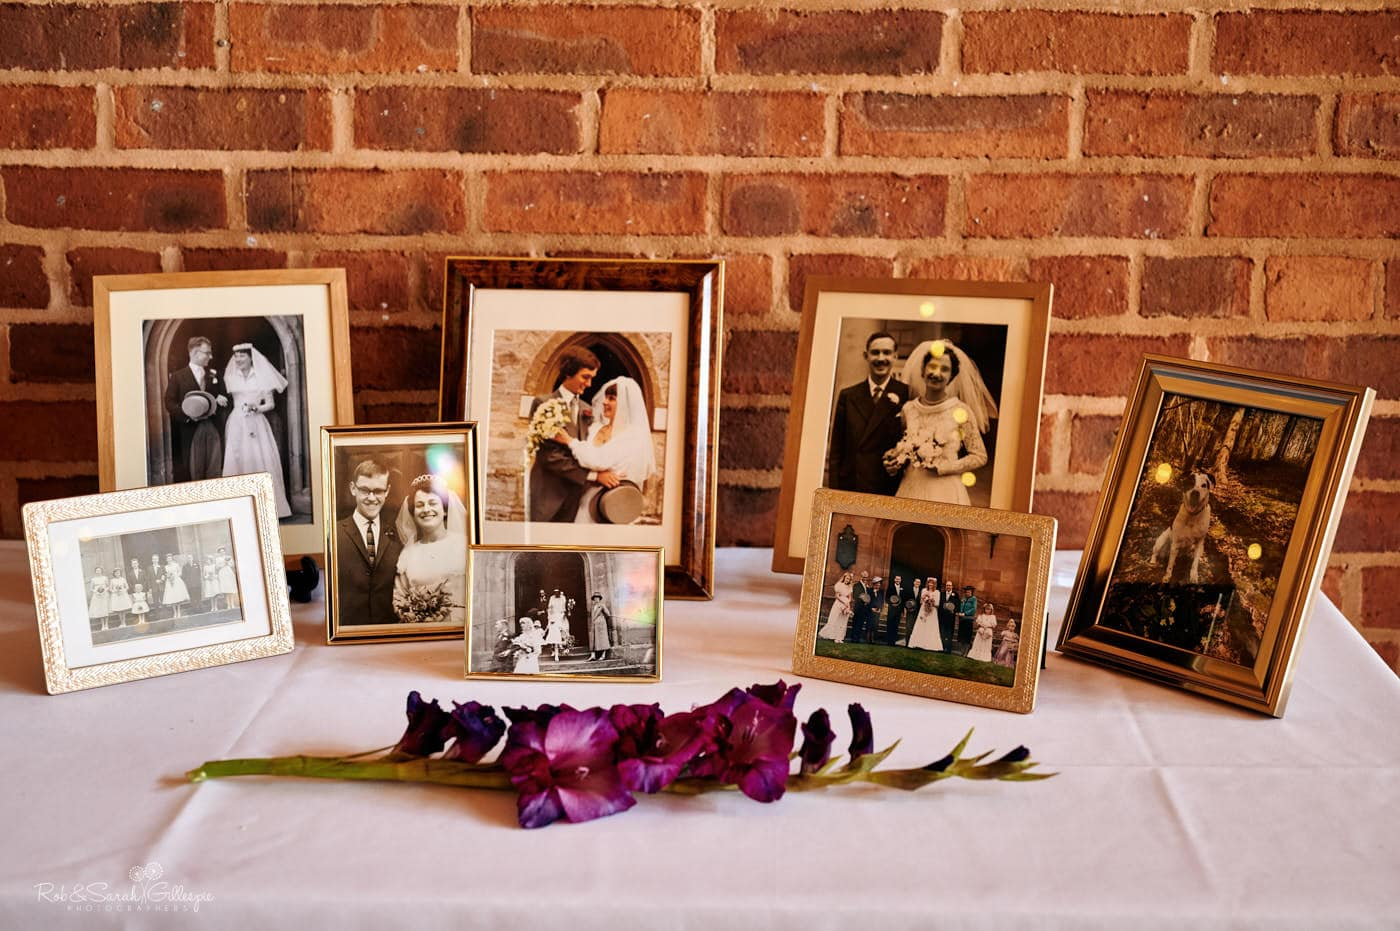 Old wedding photos set up on table